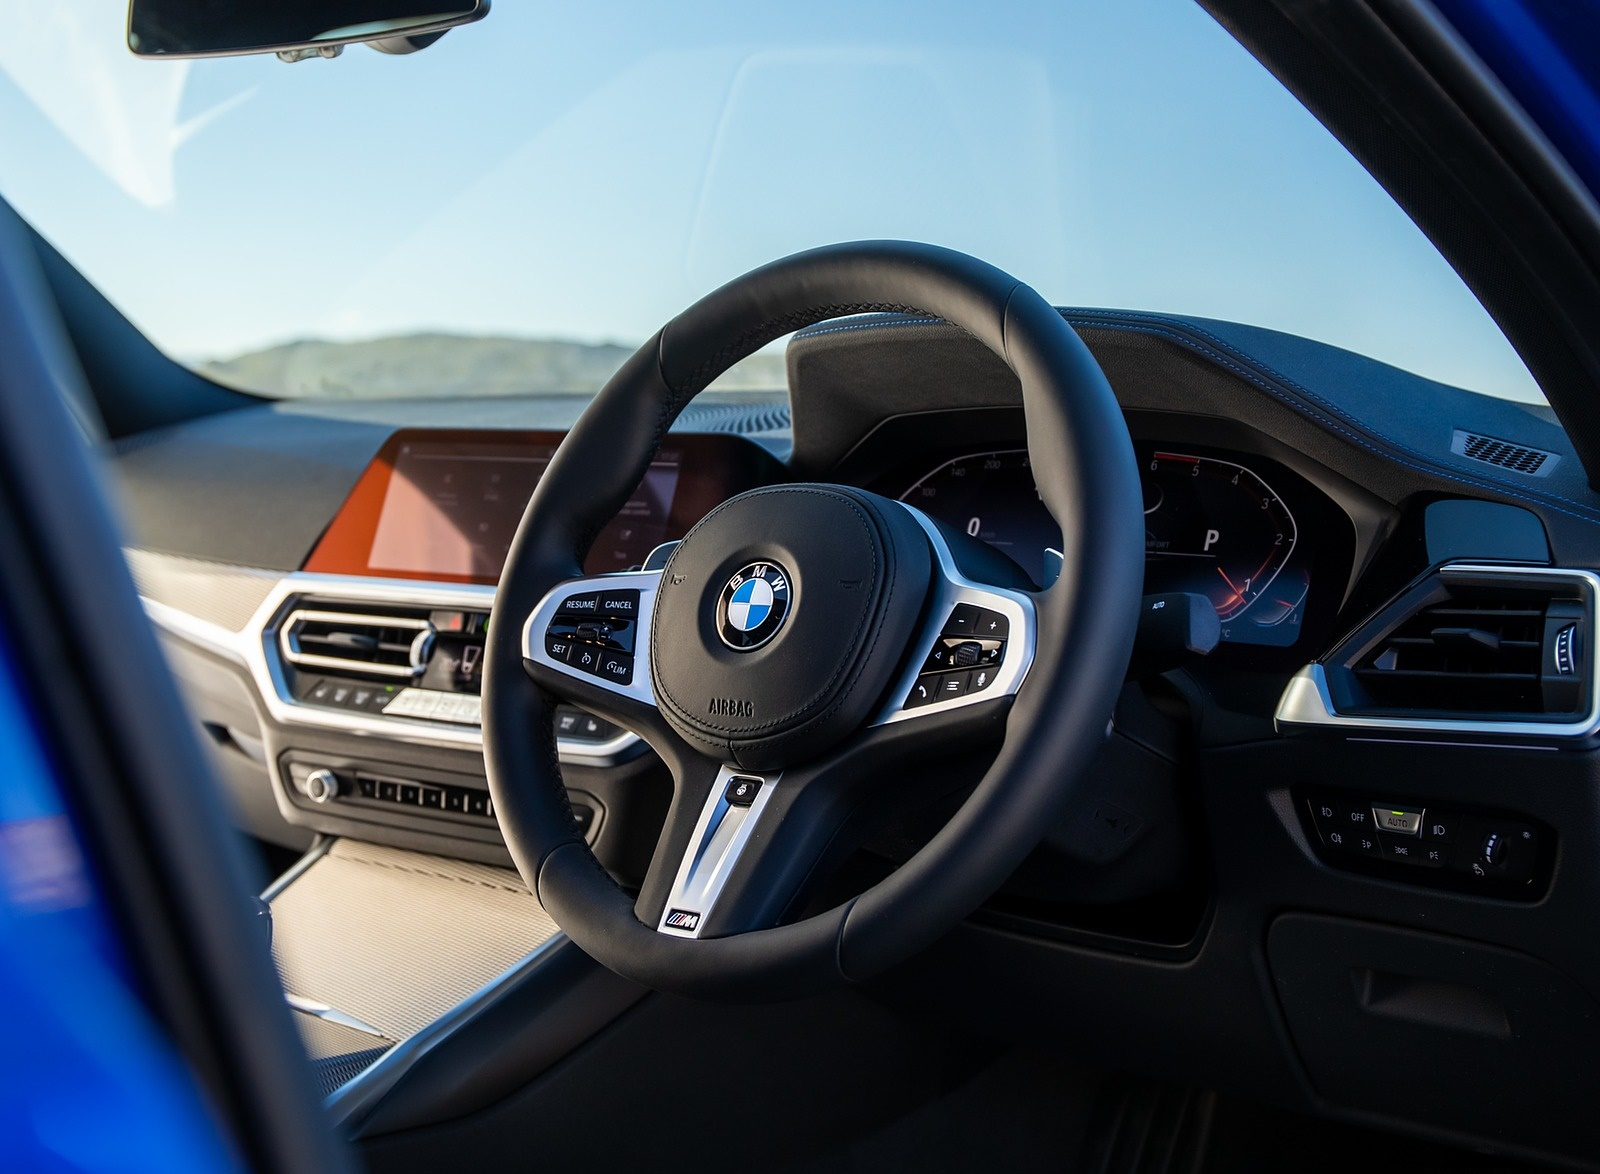 2019 Bmw 3 Series Saloon 320d Xdrive Uk Spec Interior Detail